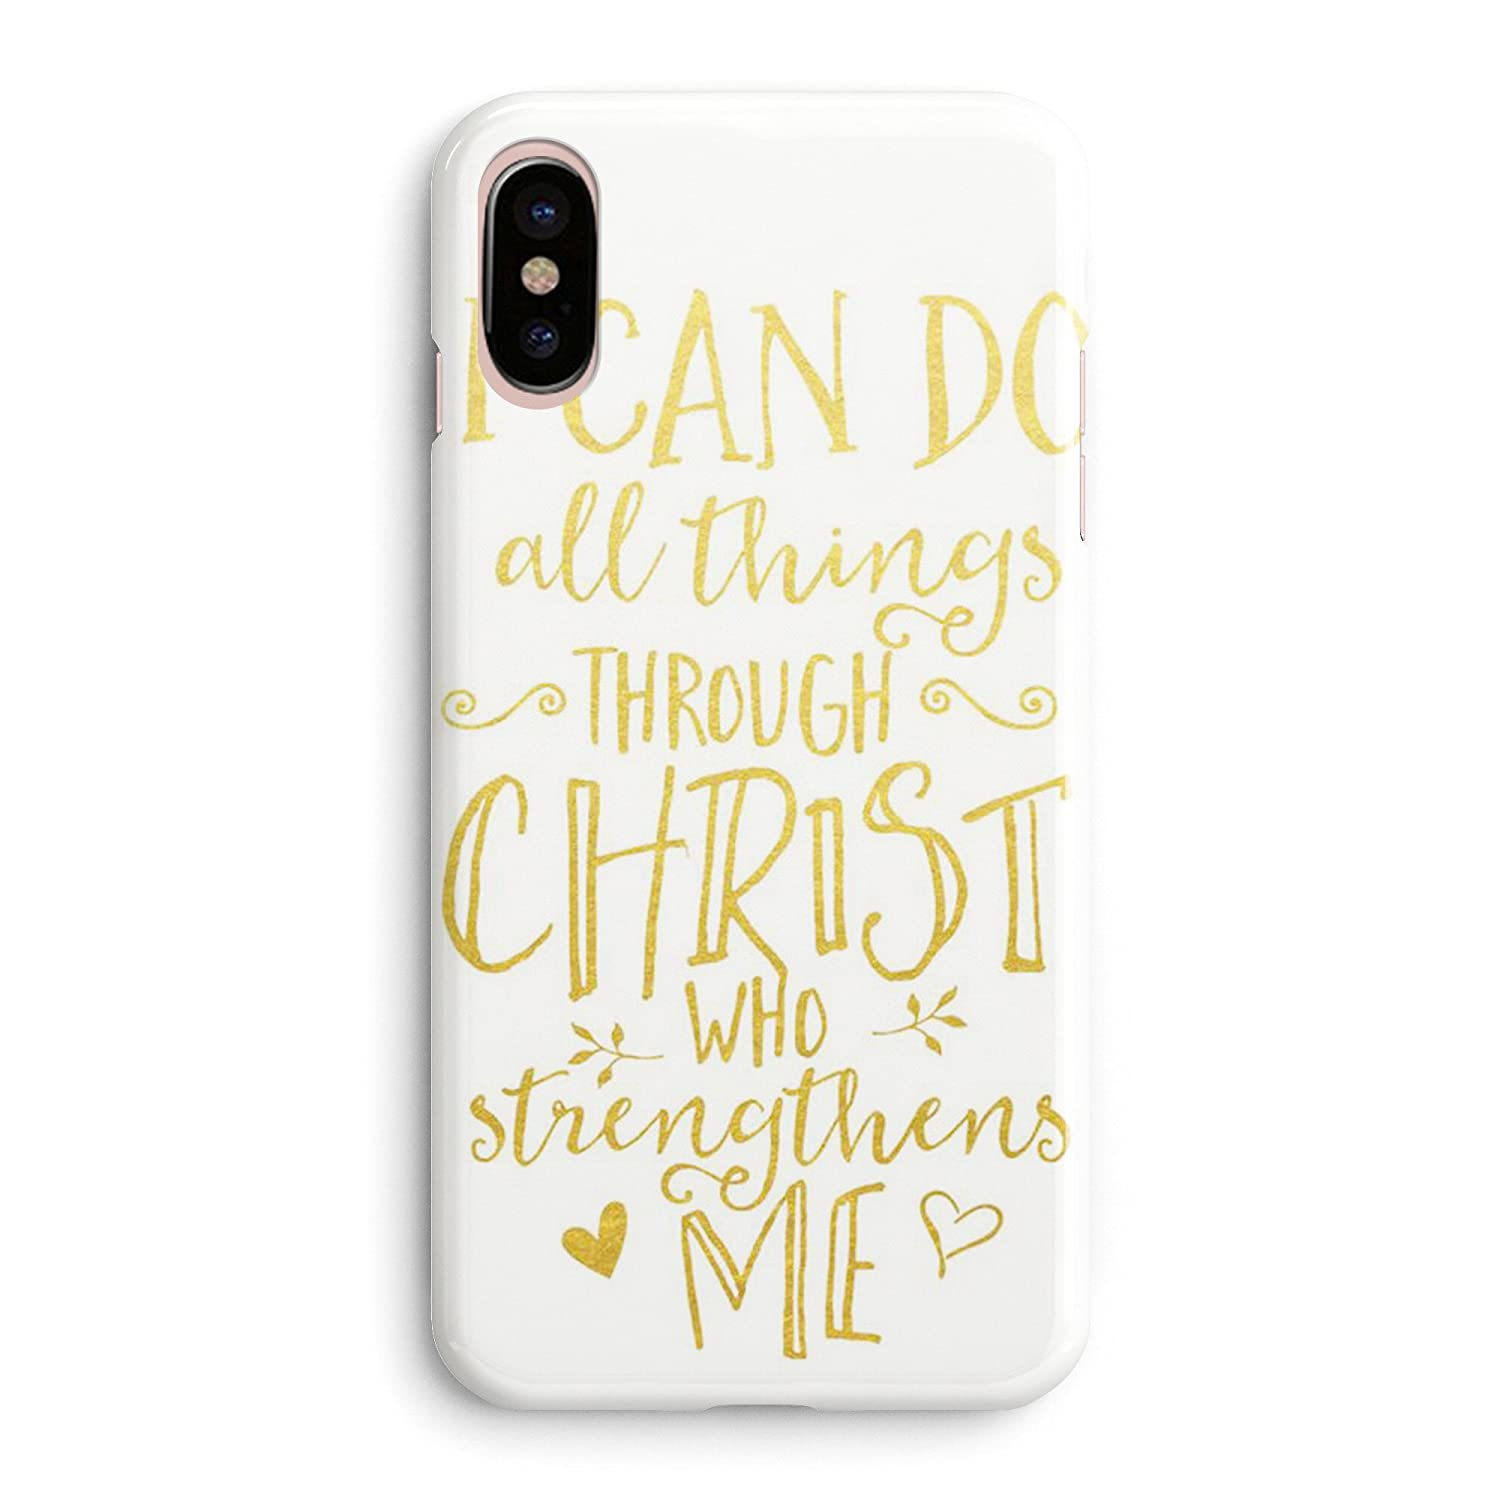 iPhone XR Case Girls Women Life Power Quotes Cute Women Bible Verses Quotes  Life Christian Inspirational Motivational I Can Do All Things Soft Clear ...